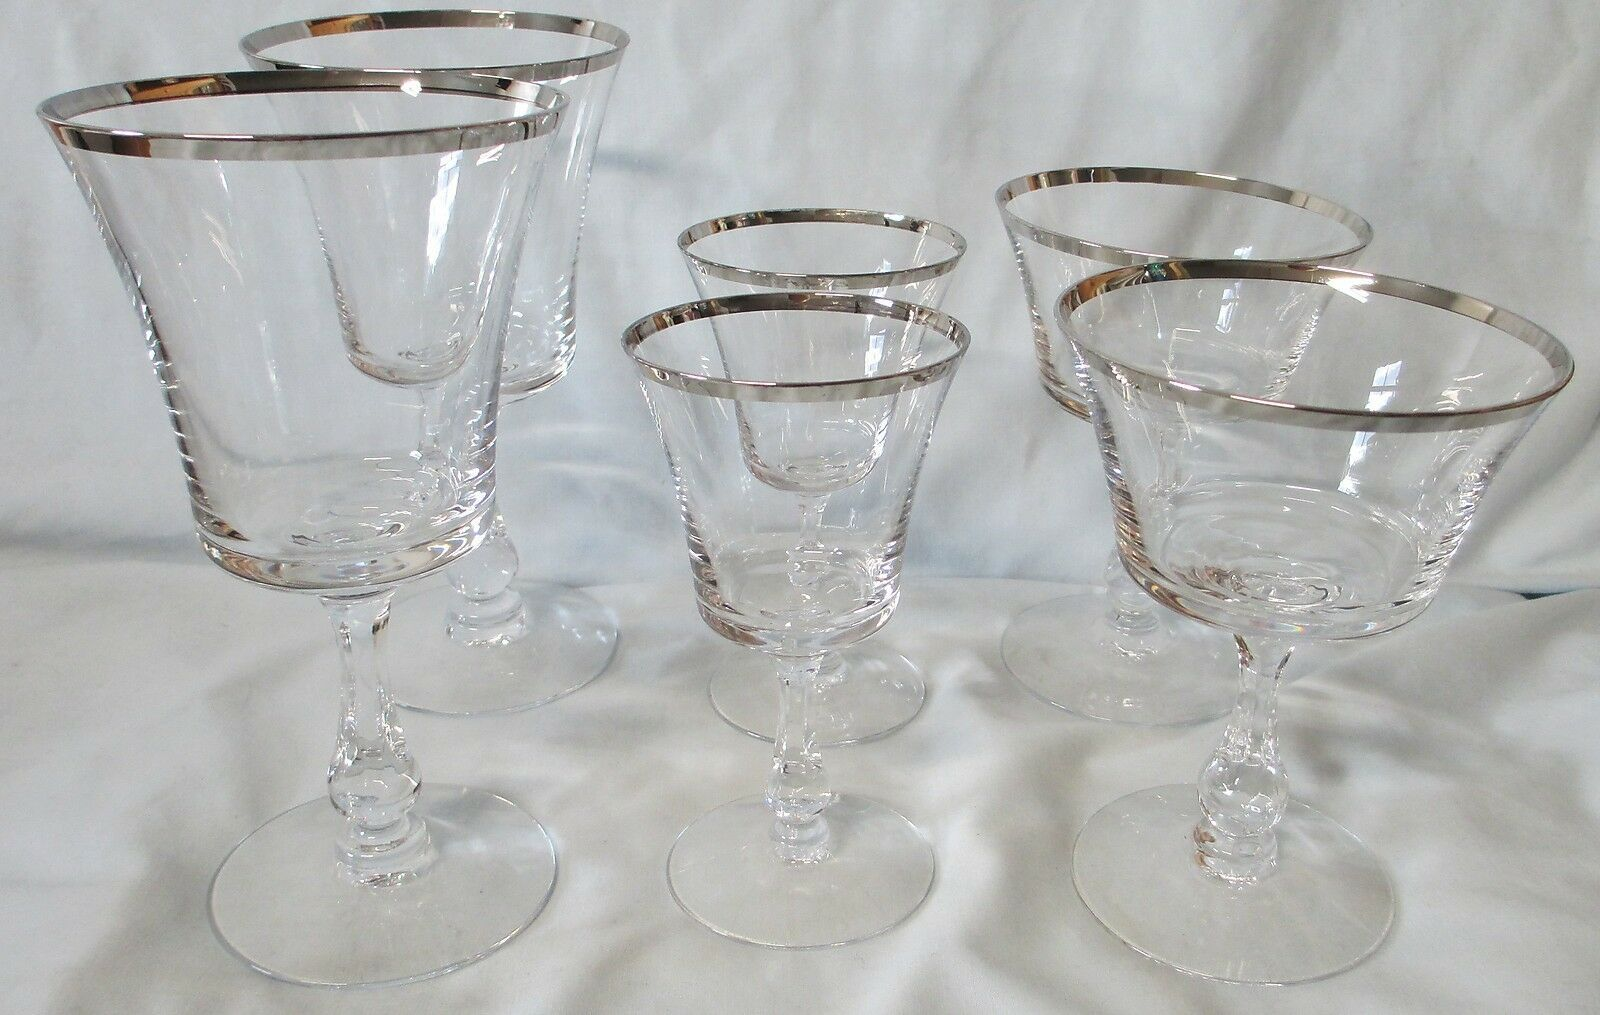 Primary image for Fostoria Crystal Platinum Sheffield Water, Wine, Sherbet Goblet set of 6